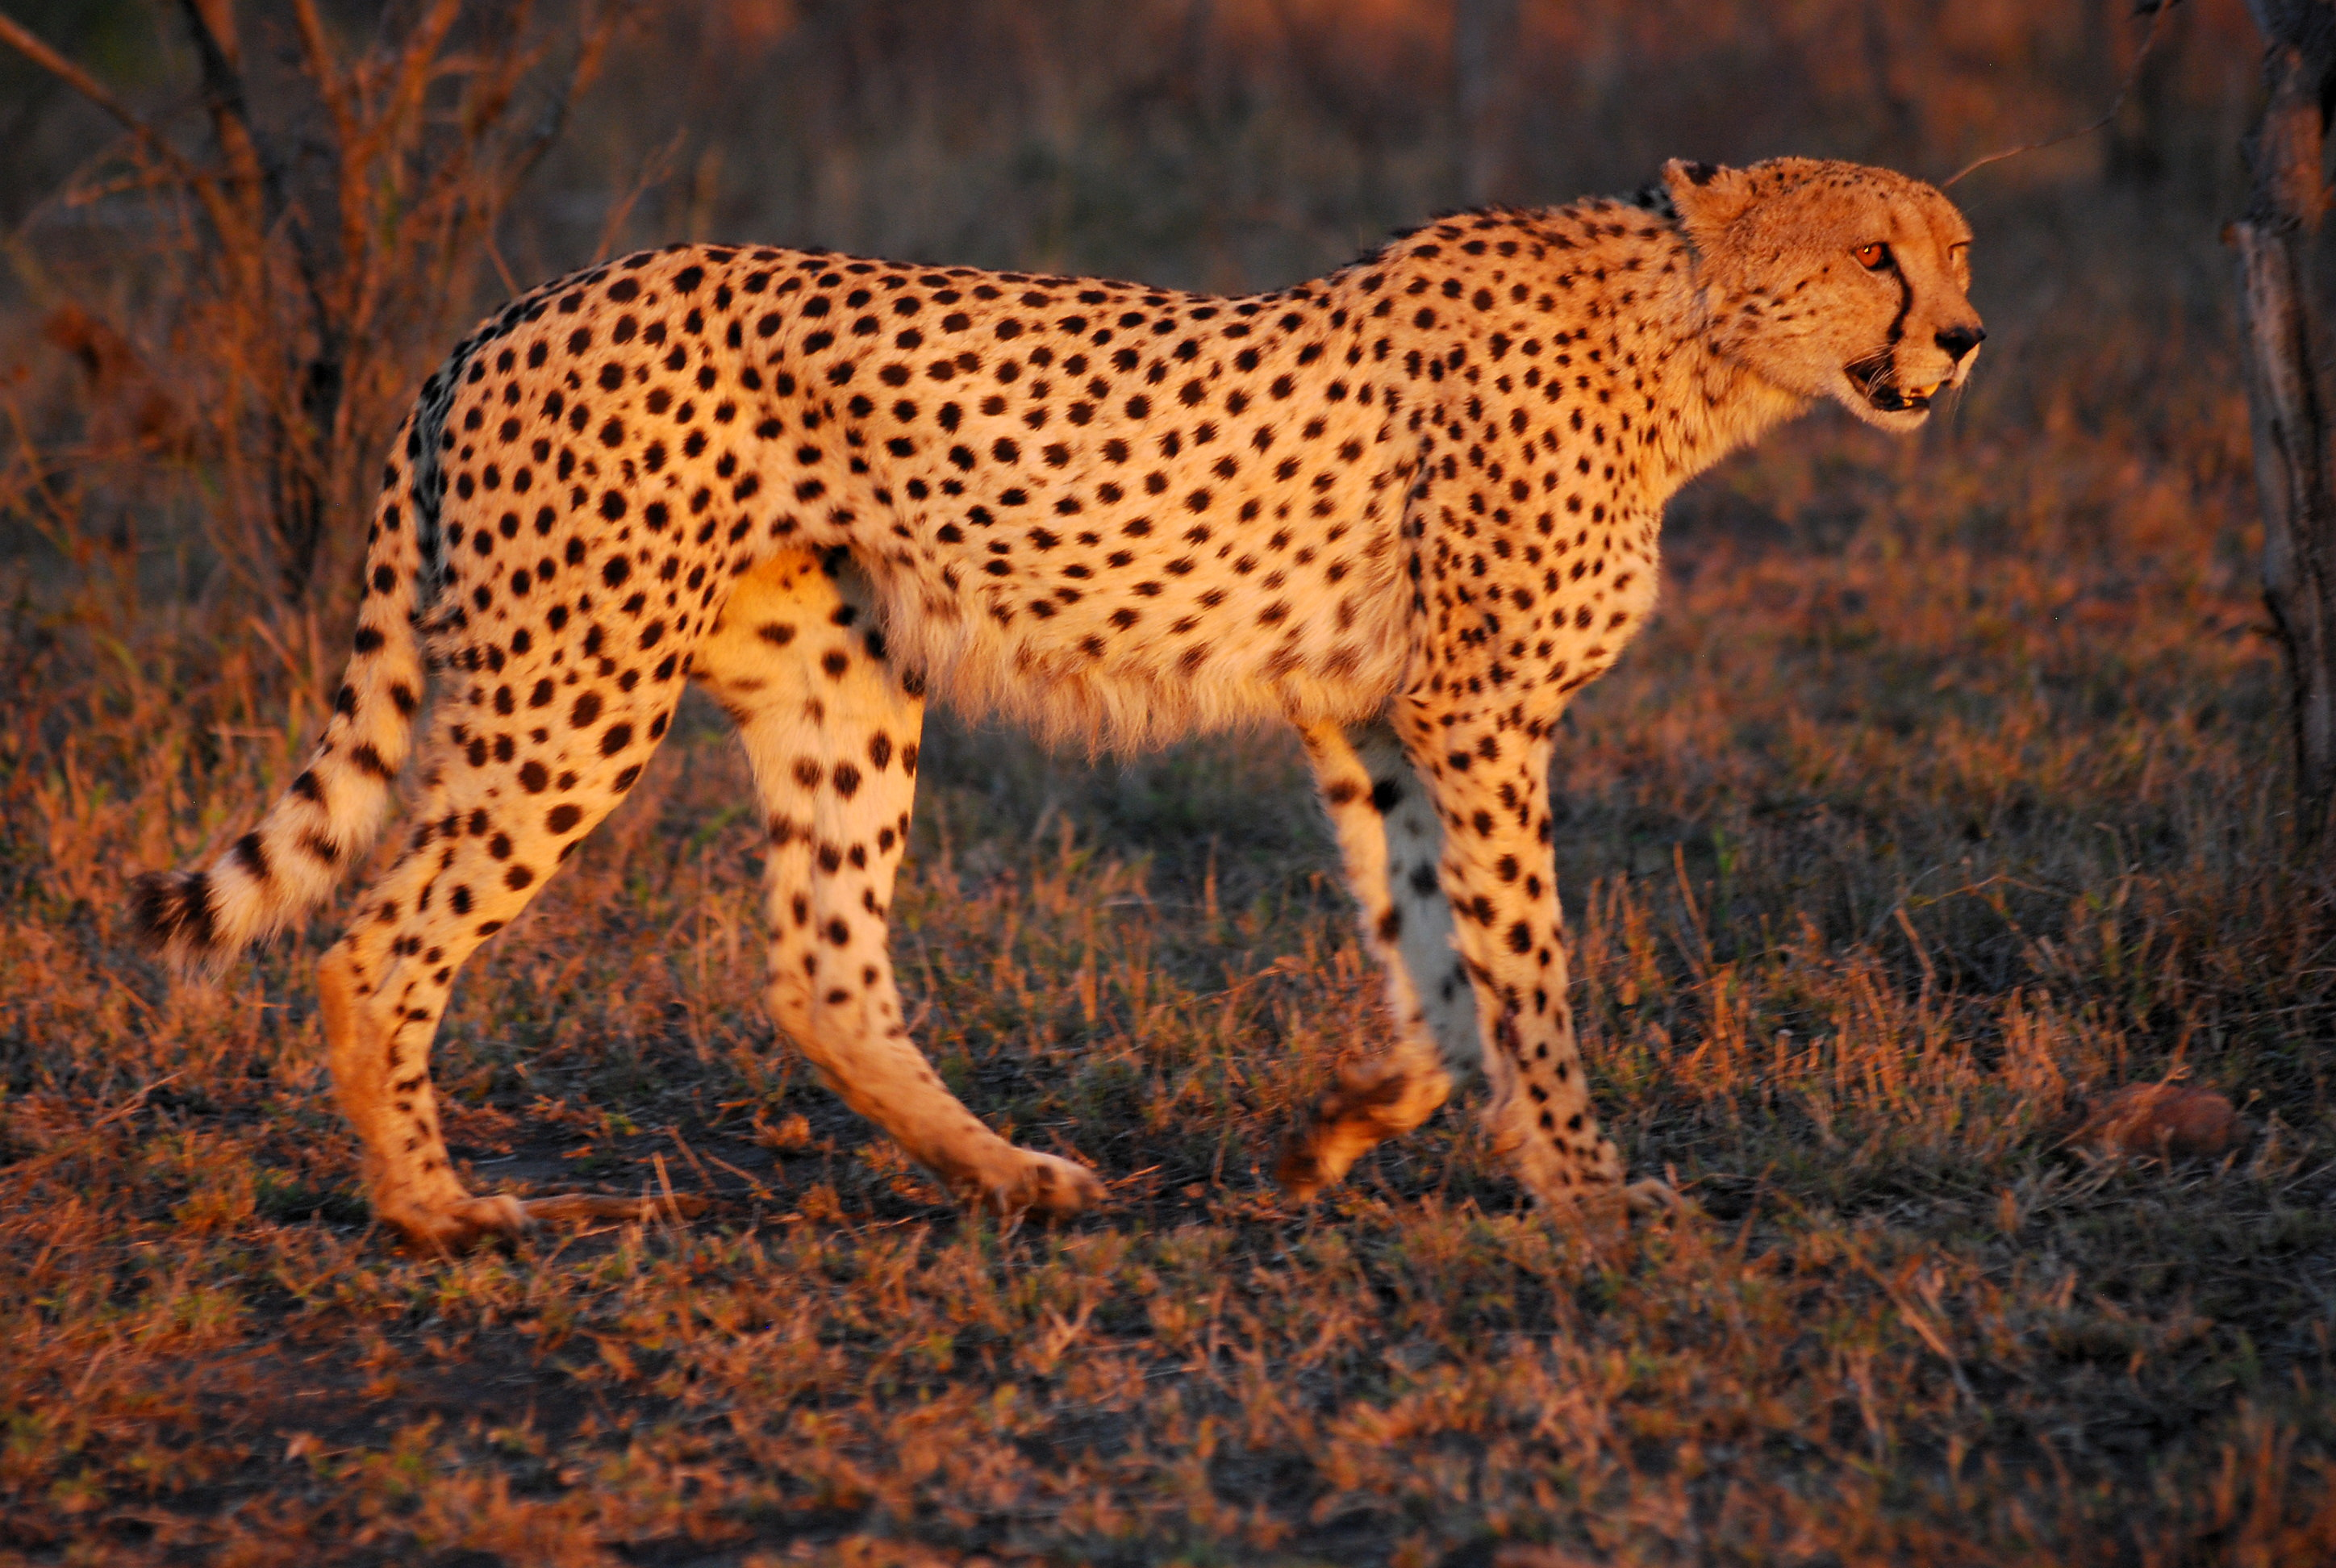 cheetahs use their tail to steer